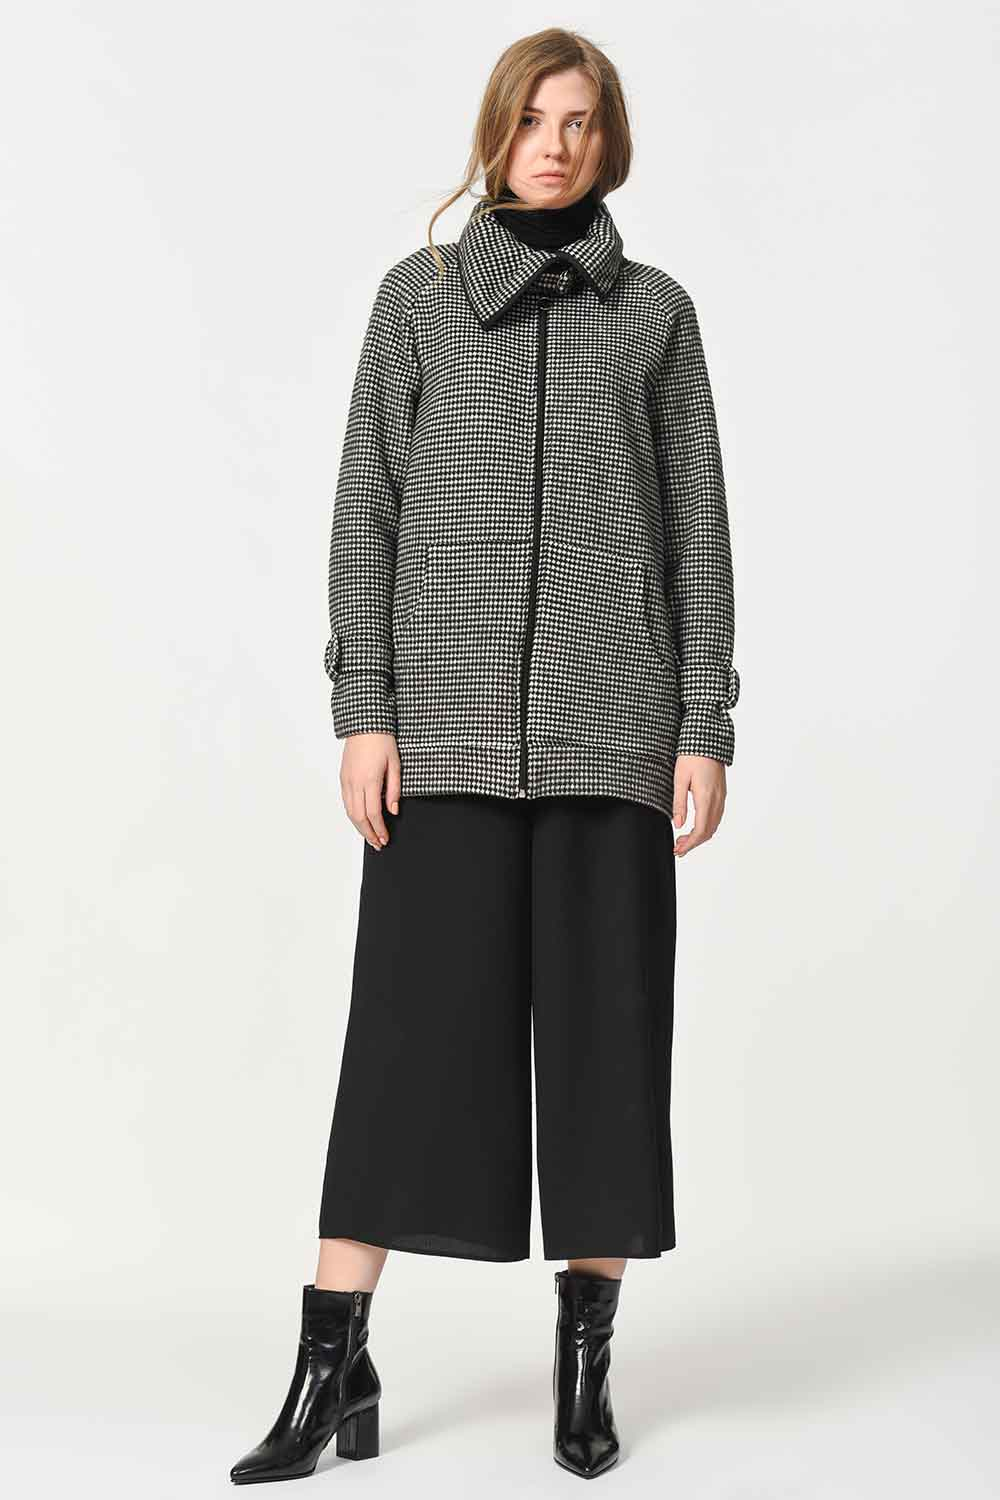 MIZALLE Zippered Jacket Cup (Smoked Color) (1)